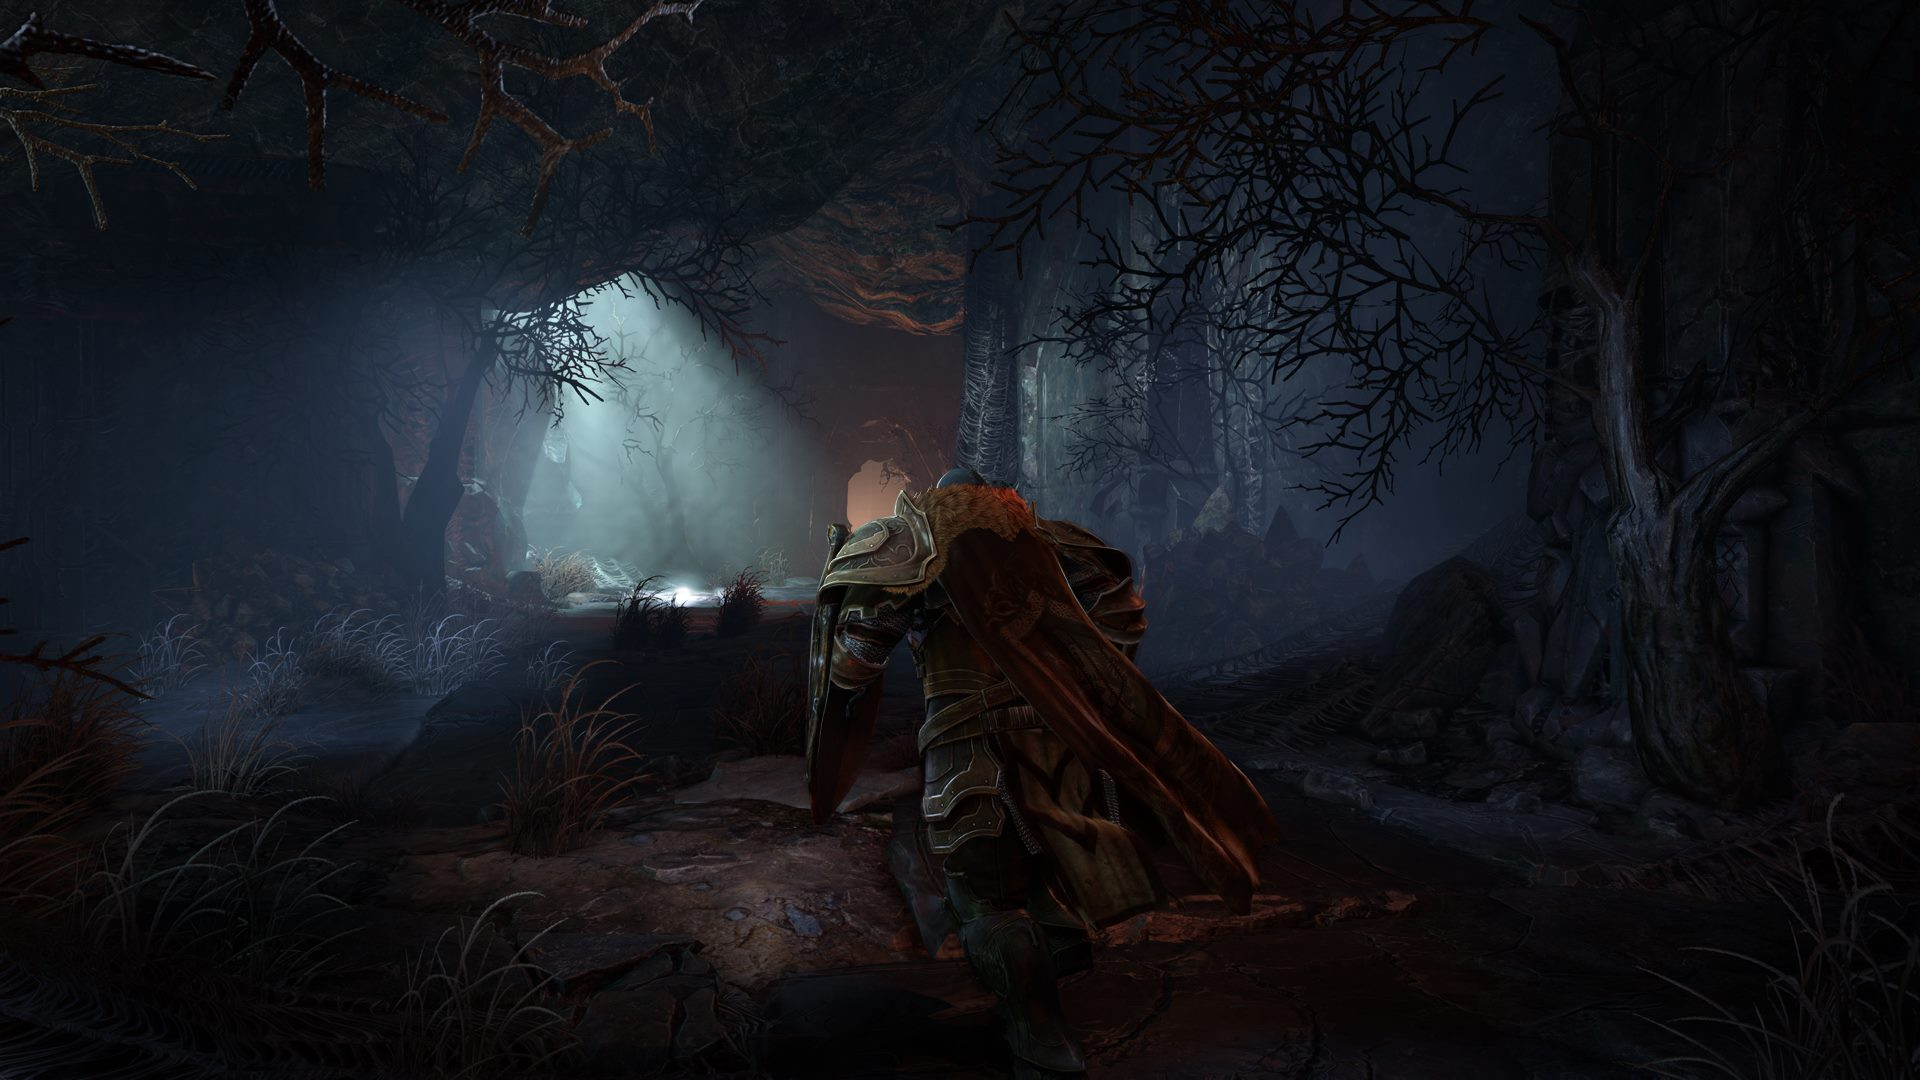 Lords of the Fallen - interiores.